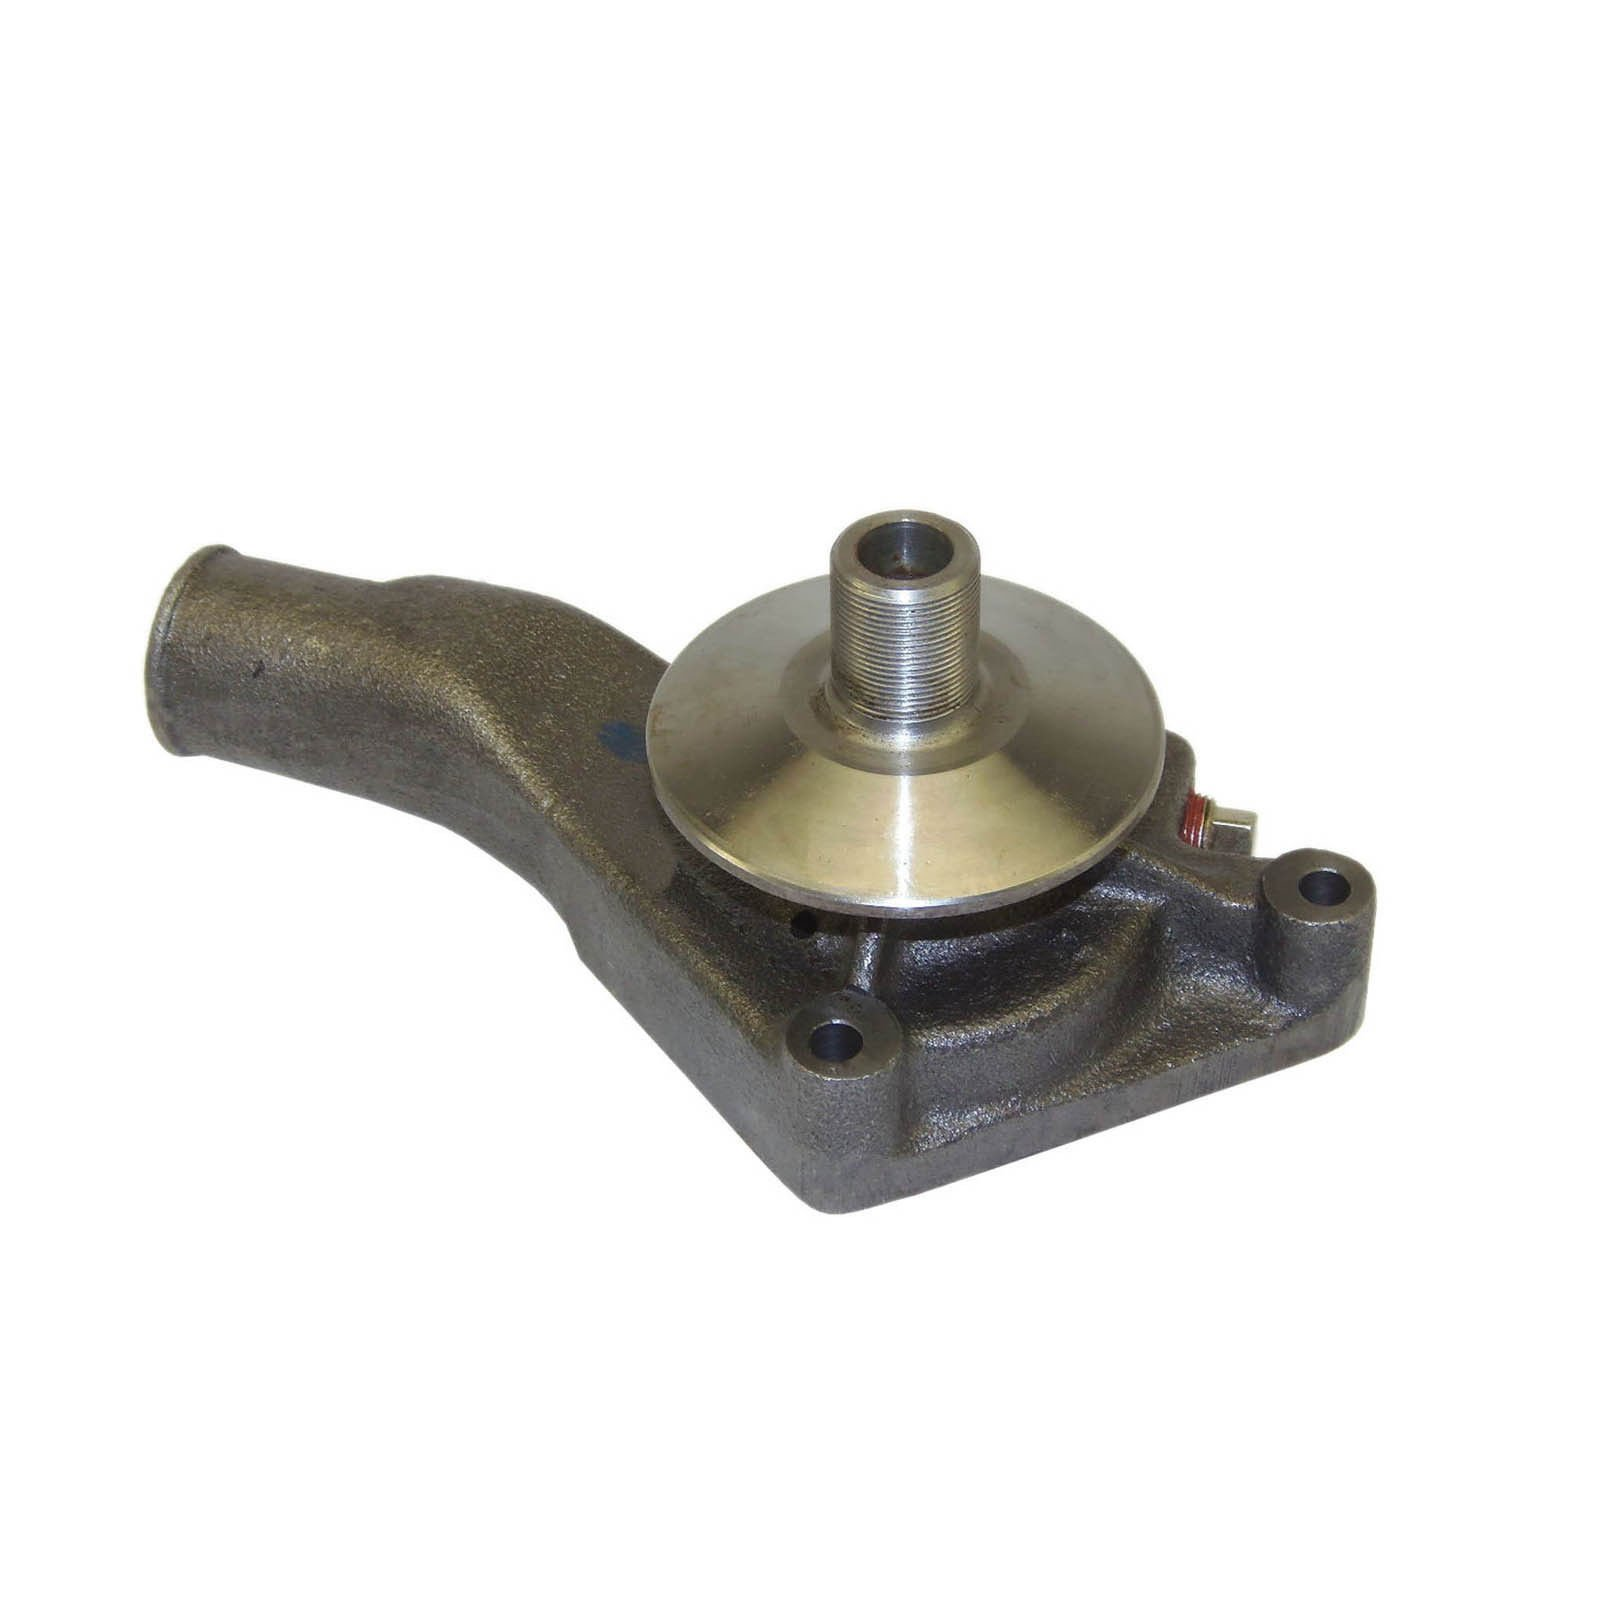 Forklift Supply - Aftermarket Hyster Forklift Water Pump PN 231519